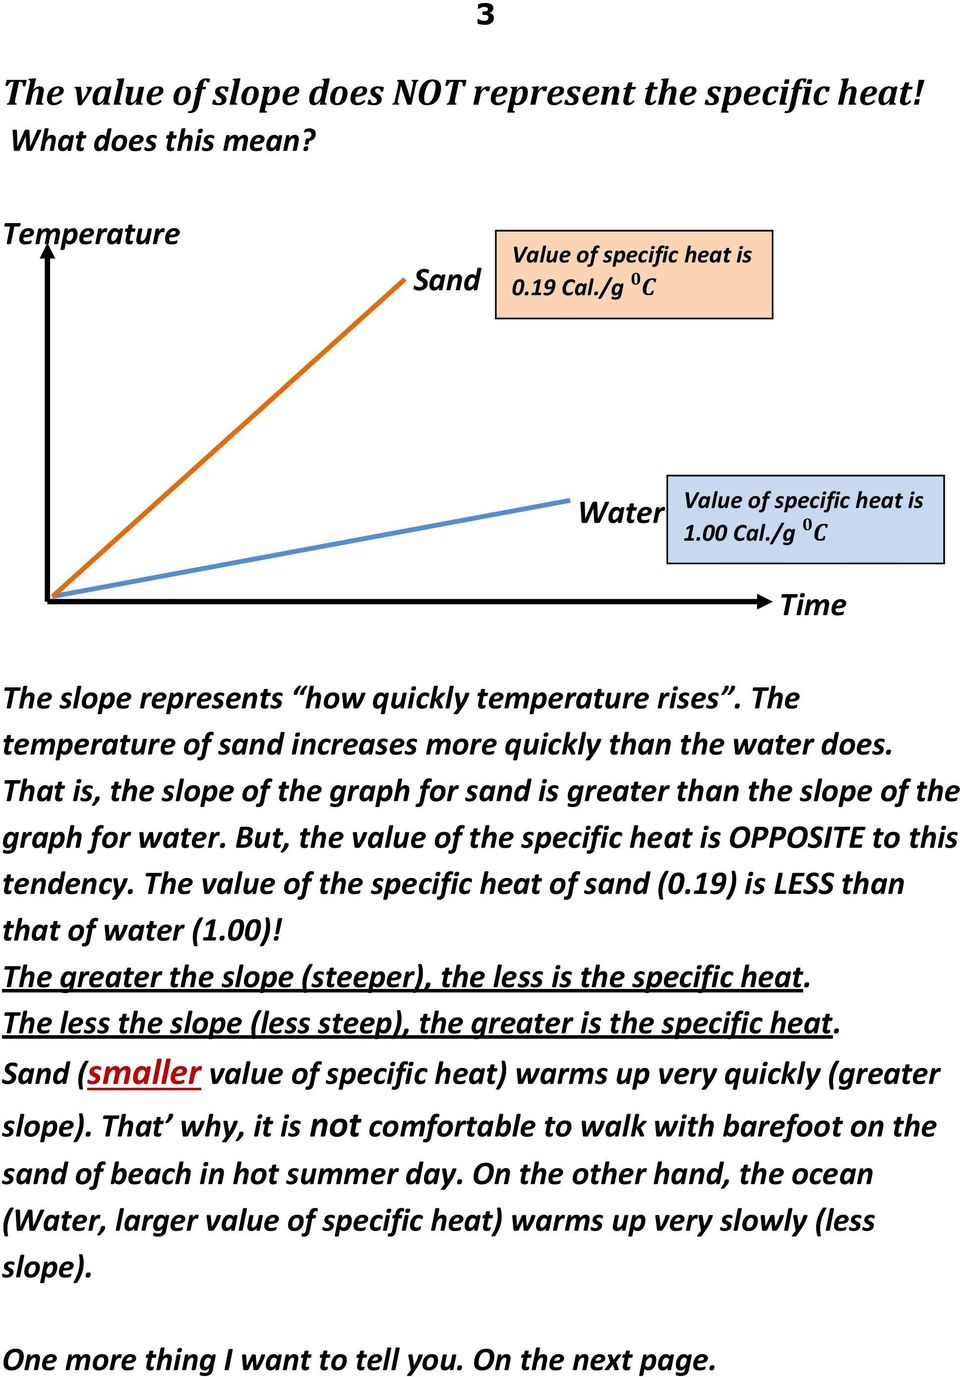 That is, the slope of the graph for sand is greater than the slope of the graph for water. But, the value of the specific heat is OPPOSITE to this tendency. The value of the specific heat of sand (0.